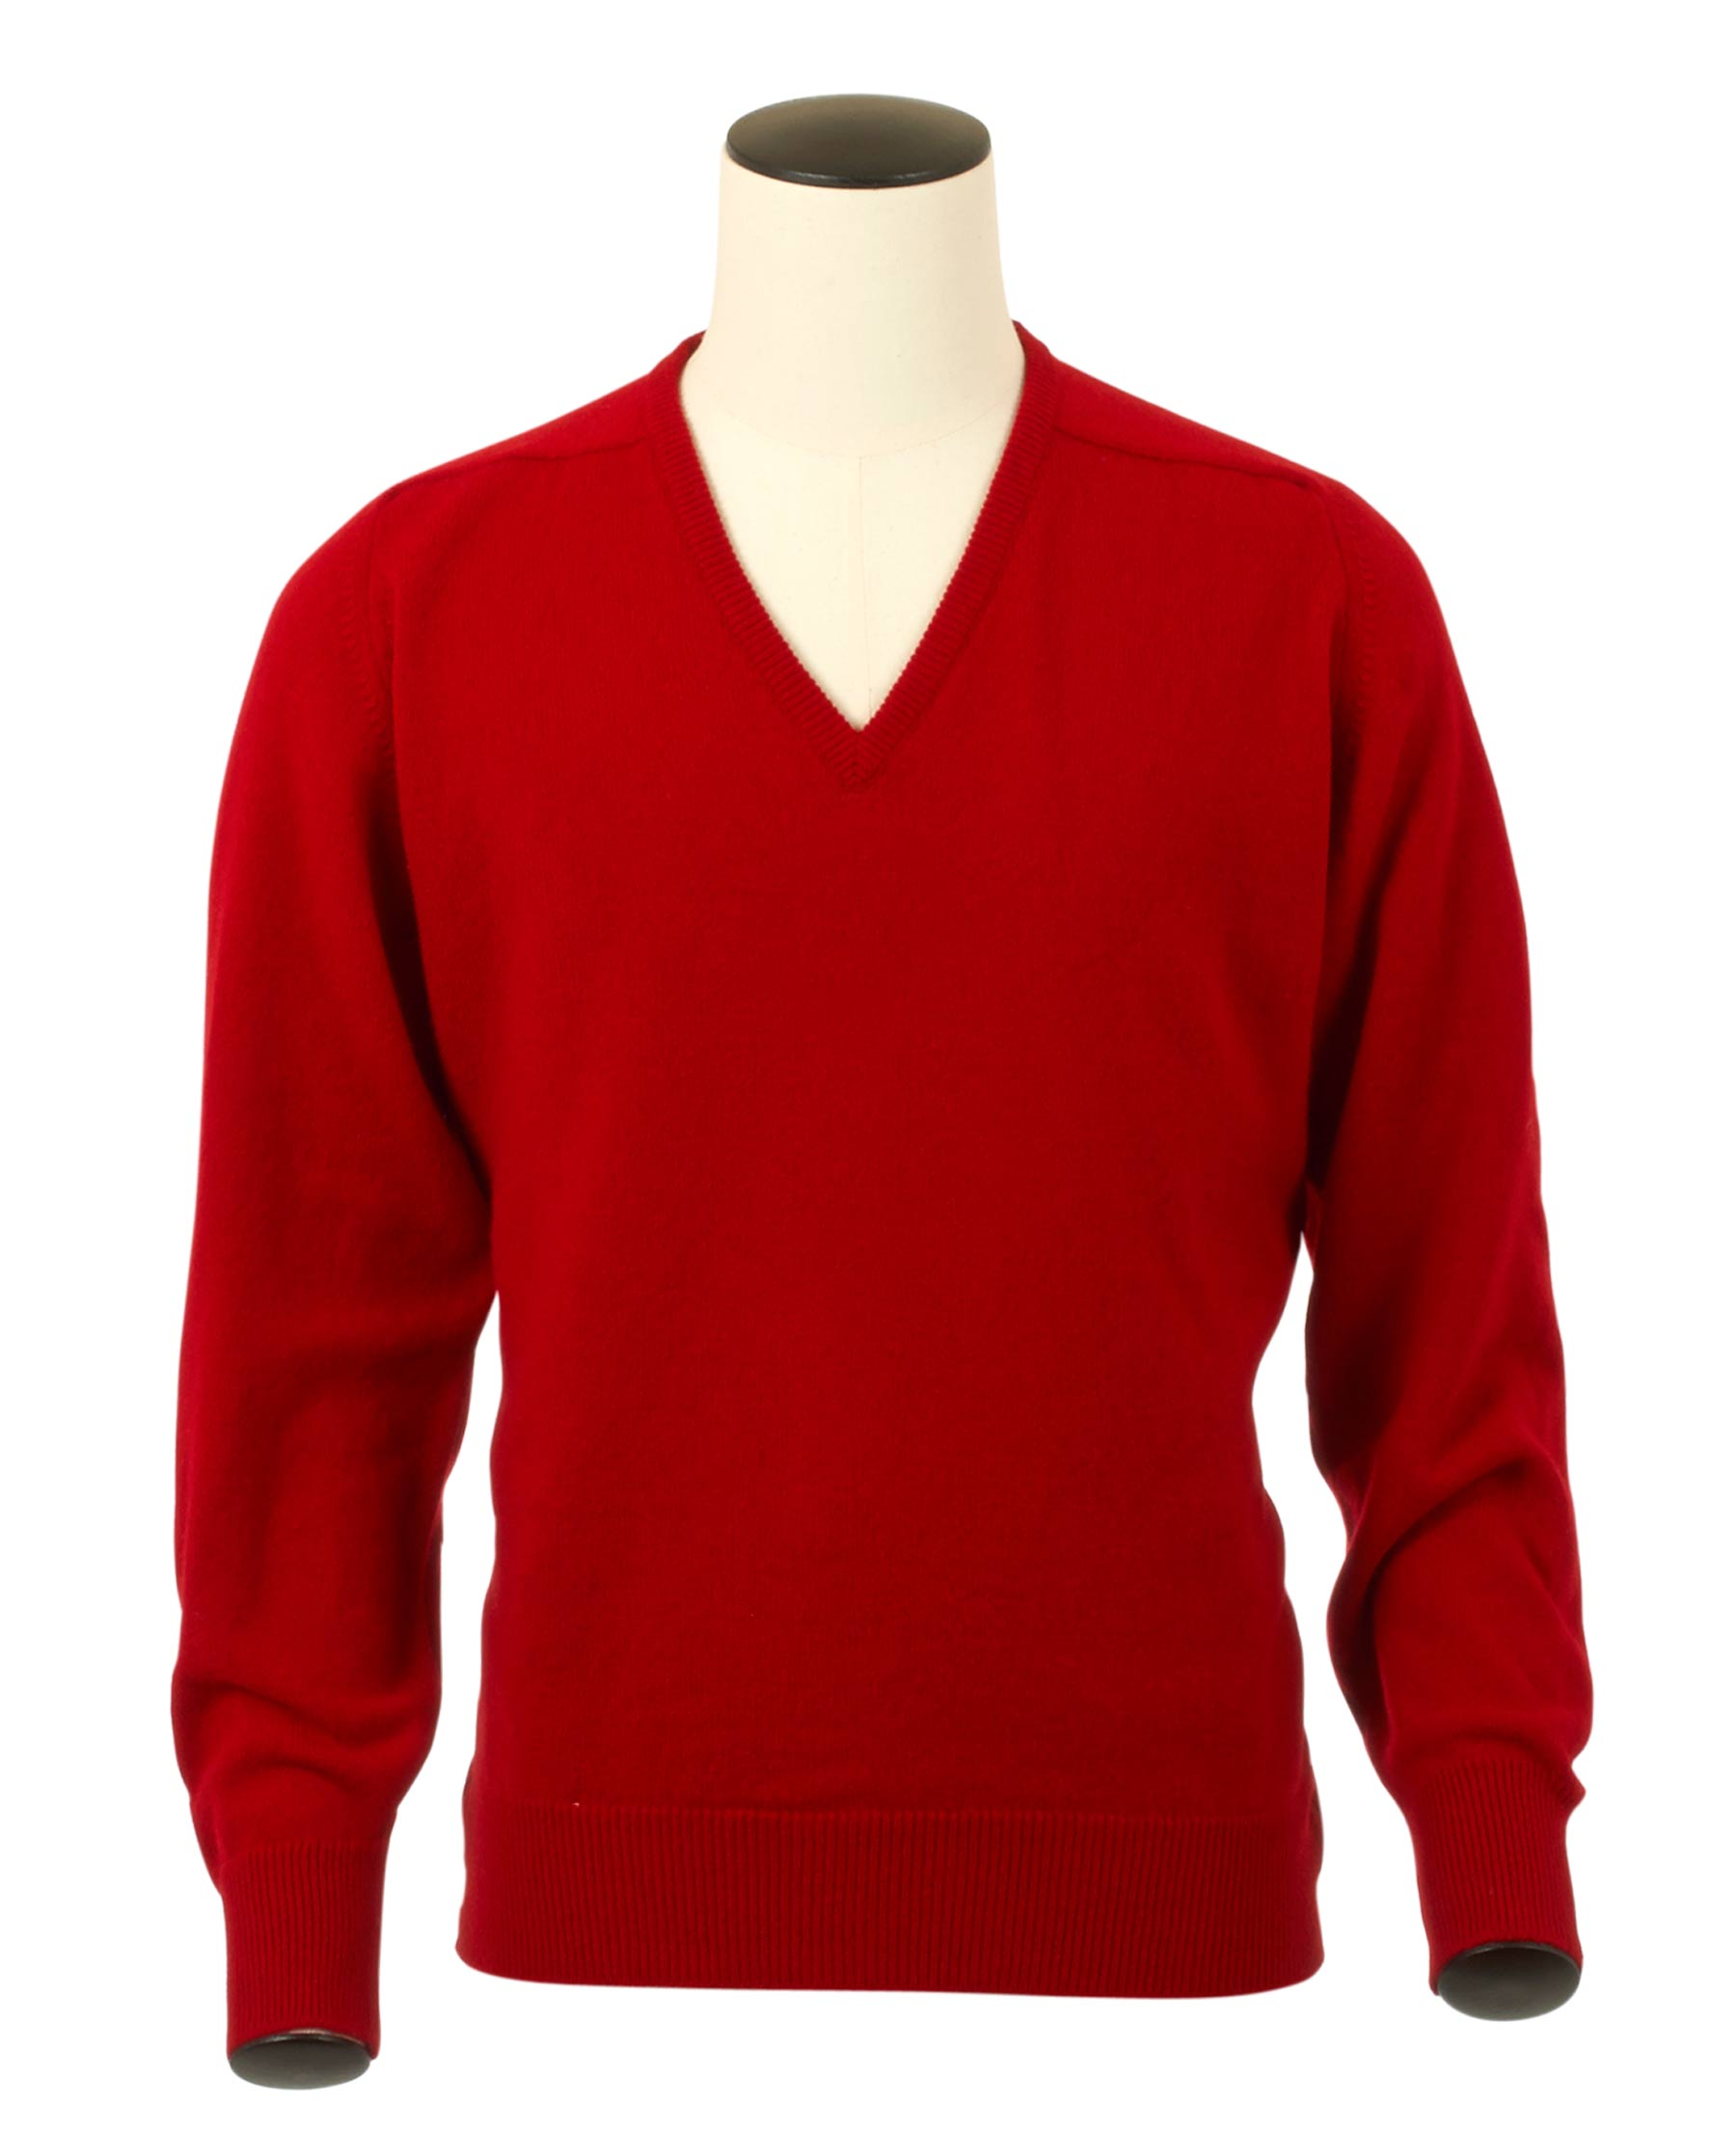 Scott, Couleur Chianti, Pull col V en 100% lambswool - Vêtements laine geelong